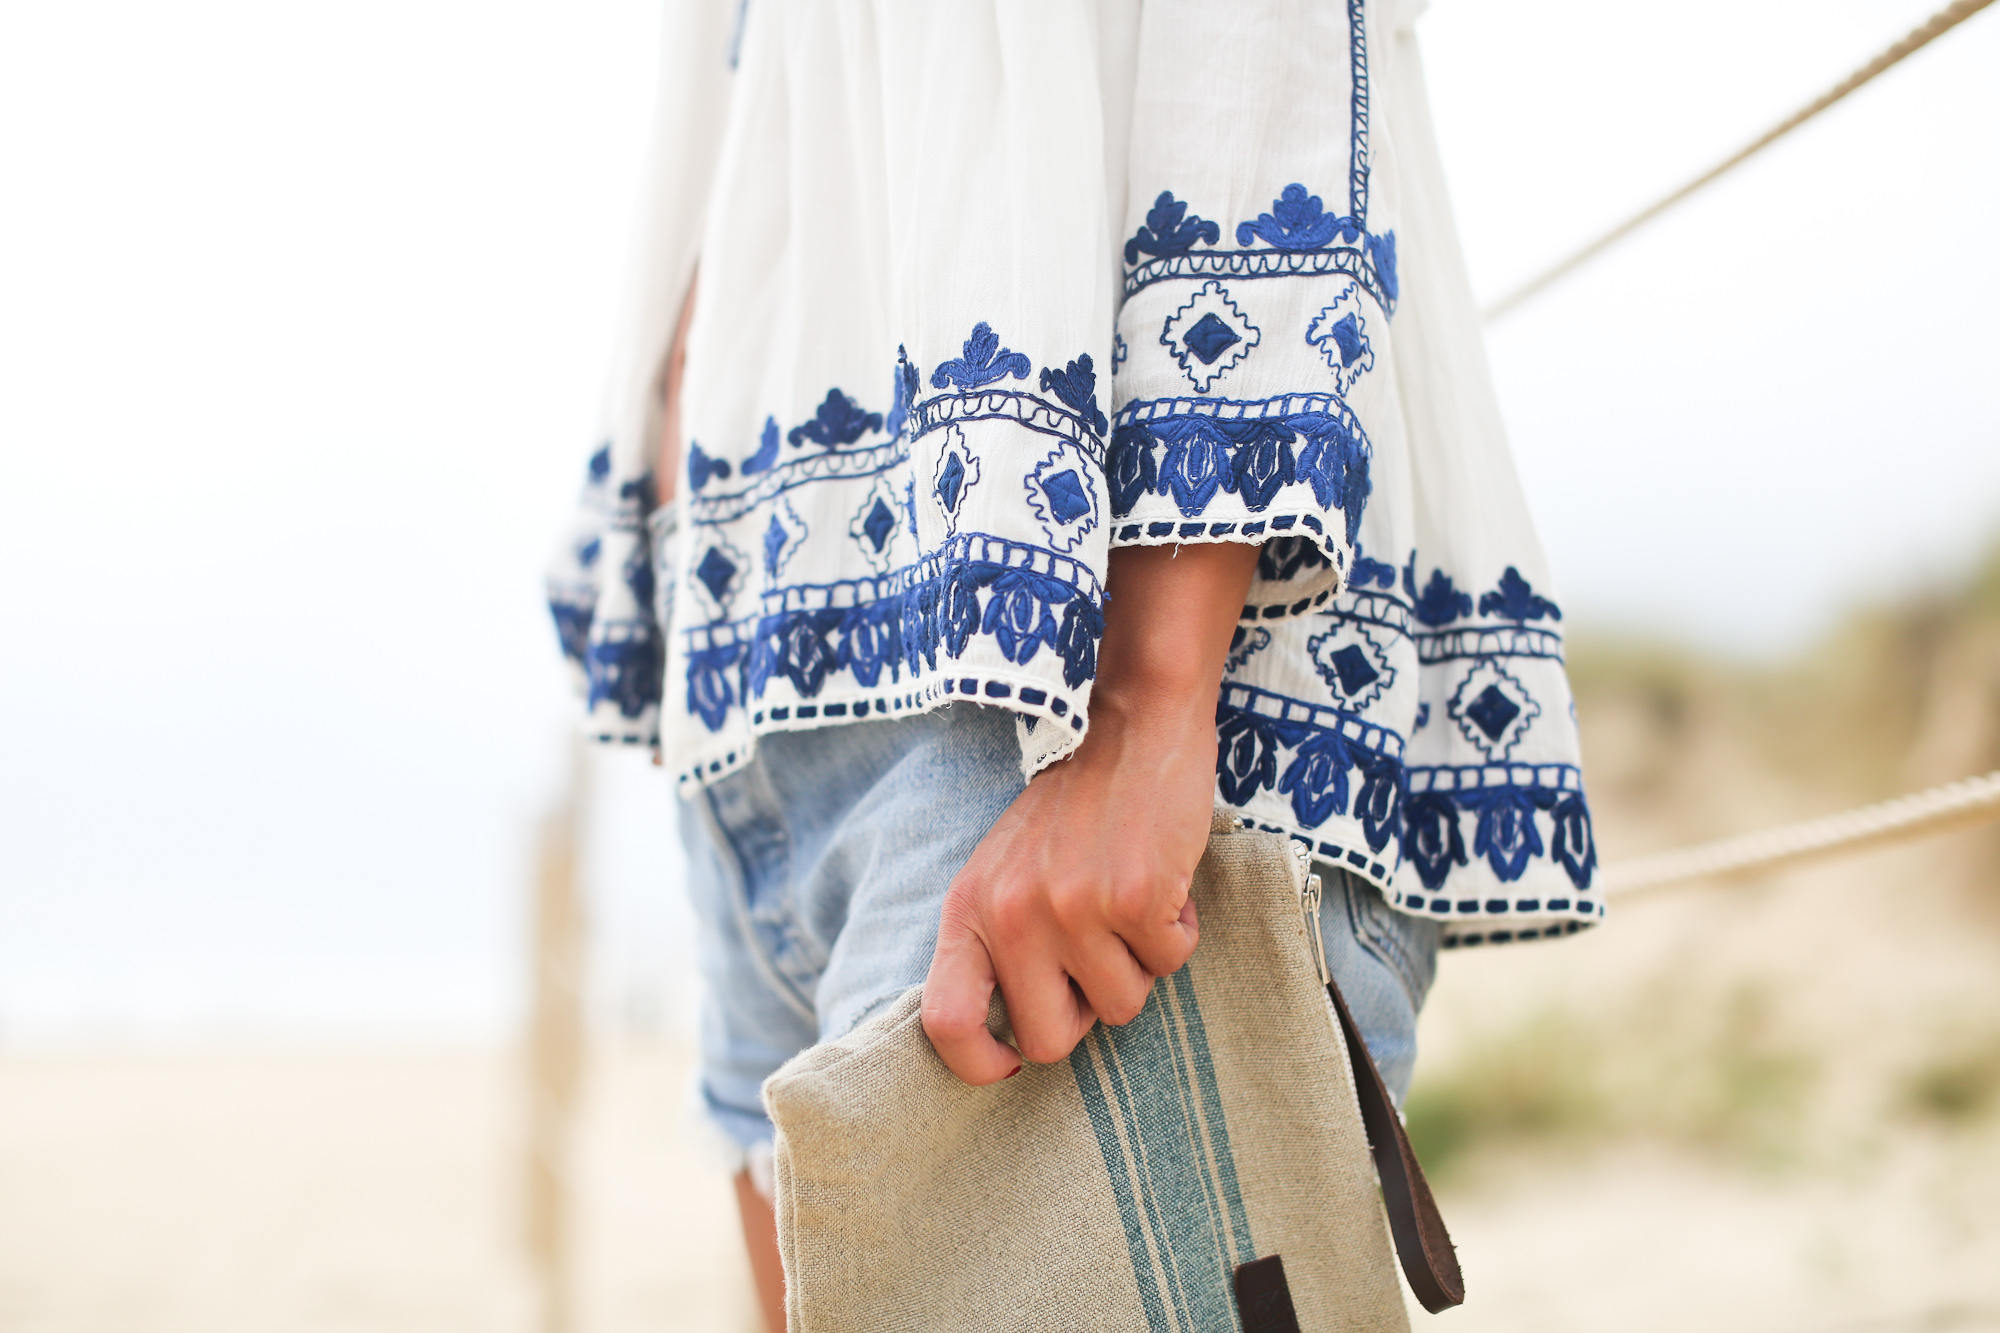 Clochet_streetstyle_zara_boho_embroided_shirt_levis501vintage_cannotier_mglinenbags-5